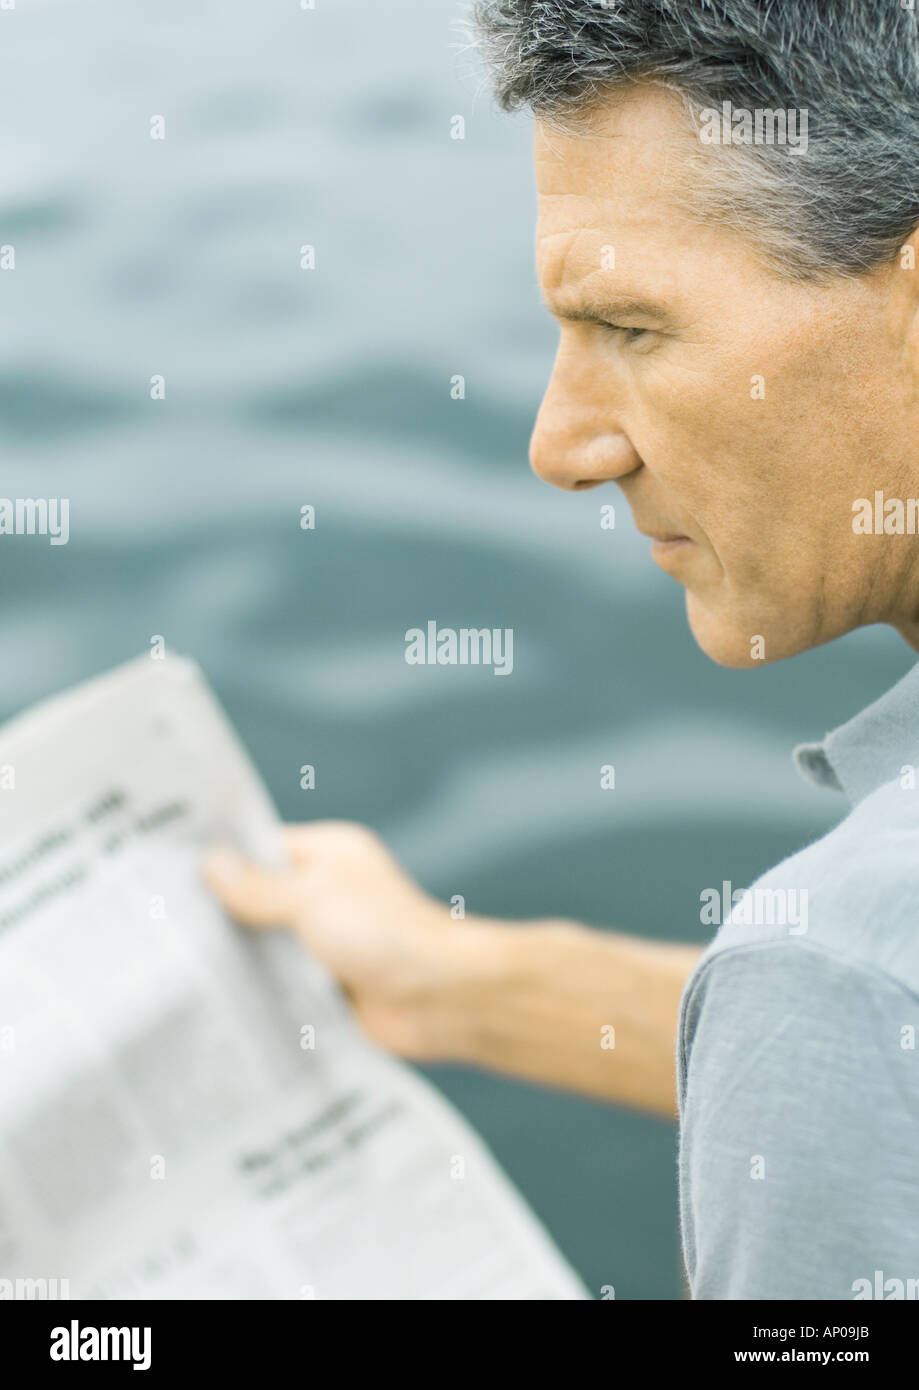 Man holding newspaper, looking away - Stock Image